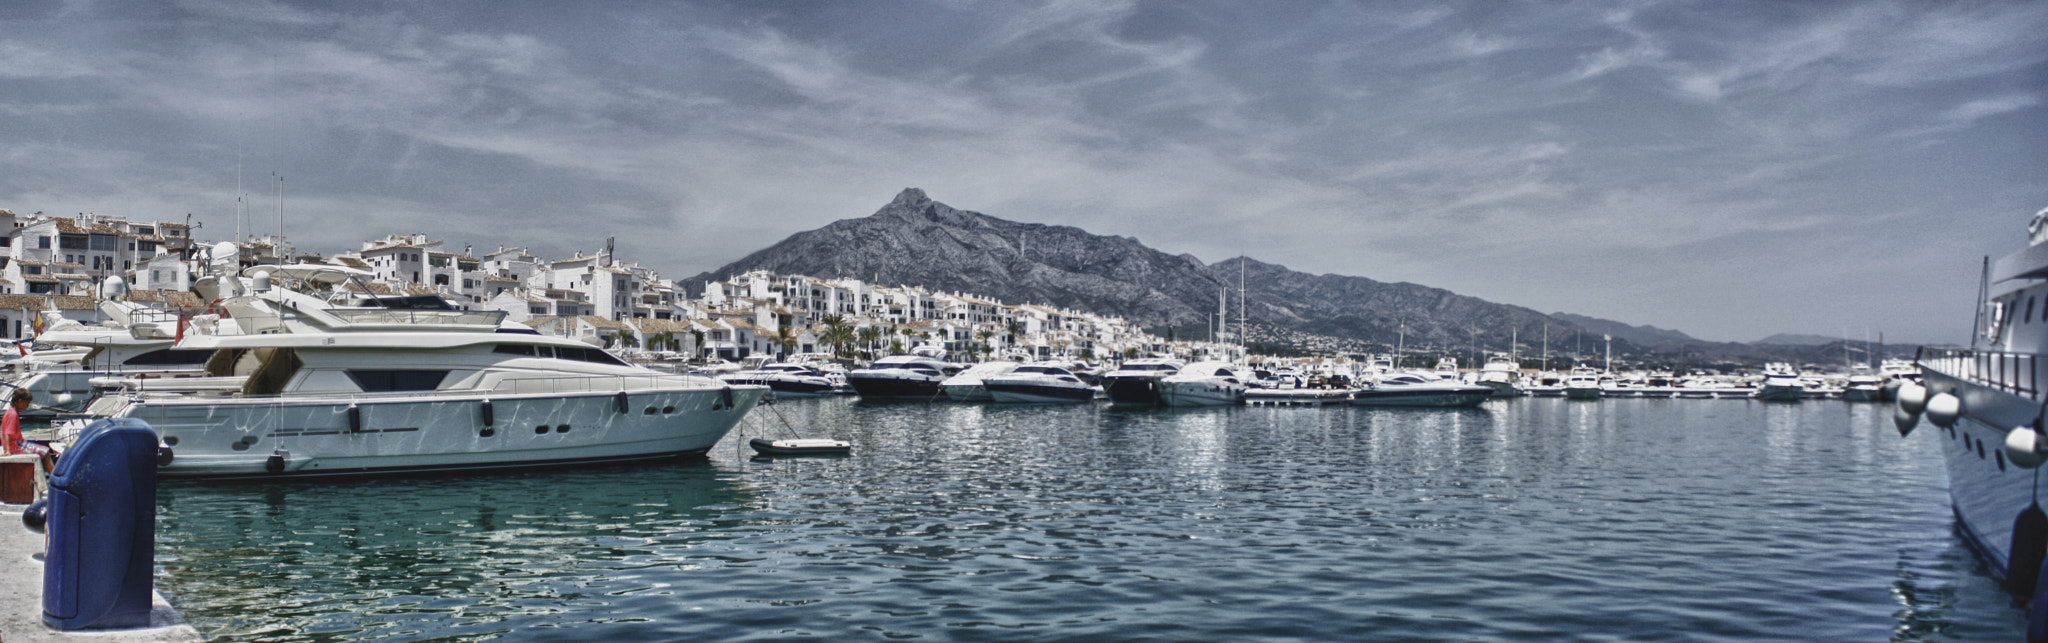 Photograph Puerto Banús by Uxue Goiko on 500px